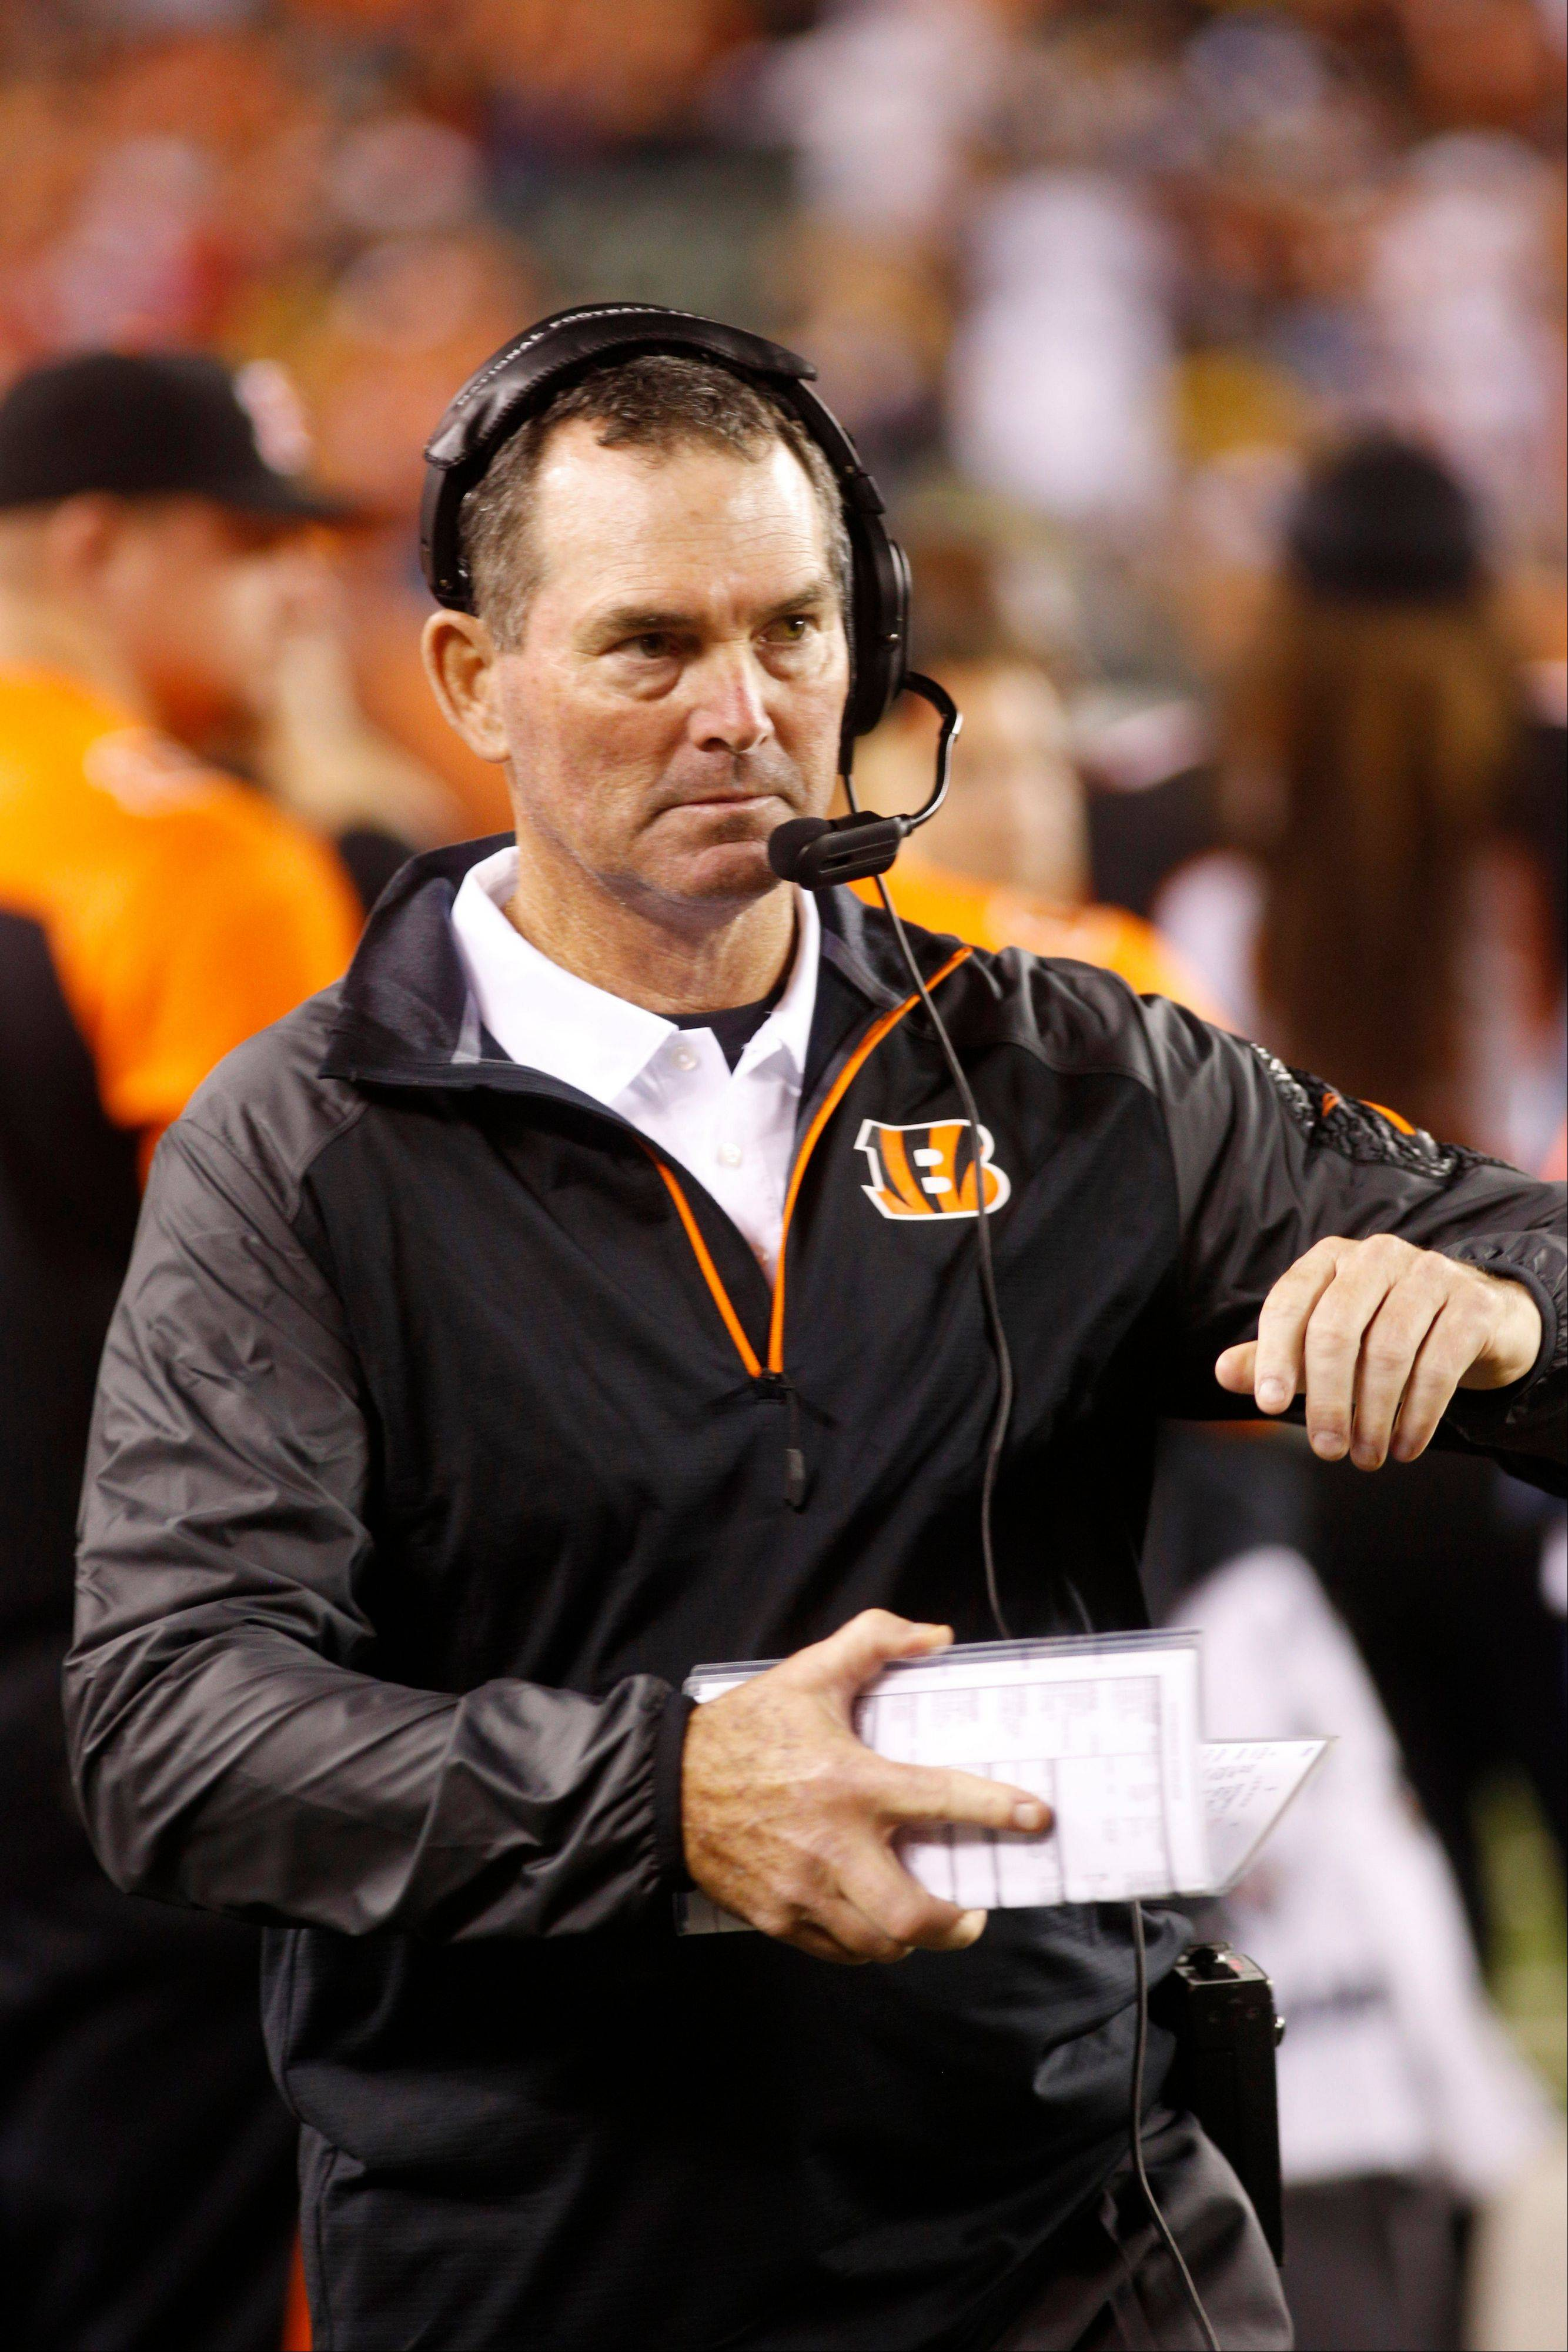 FILE - IN this Sept. 17, 2013 file photo, Cincinnati Bengals defensive coordinator Mike Zimmer watches from the sidelines in the second half of an NFL football game against the Pittsburgh Steelers, in Cincinnati. The Minnesota Vikings have chosen Zimmer as their new head coach, according to multiple media reports. Zimmer will replace Leslie Frazier, who was fired after the team finished 5-10-1 this season. (AP Photo/David Kohl, File)